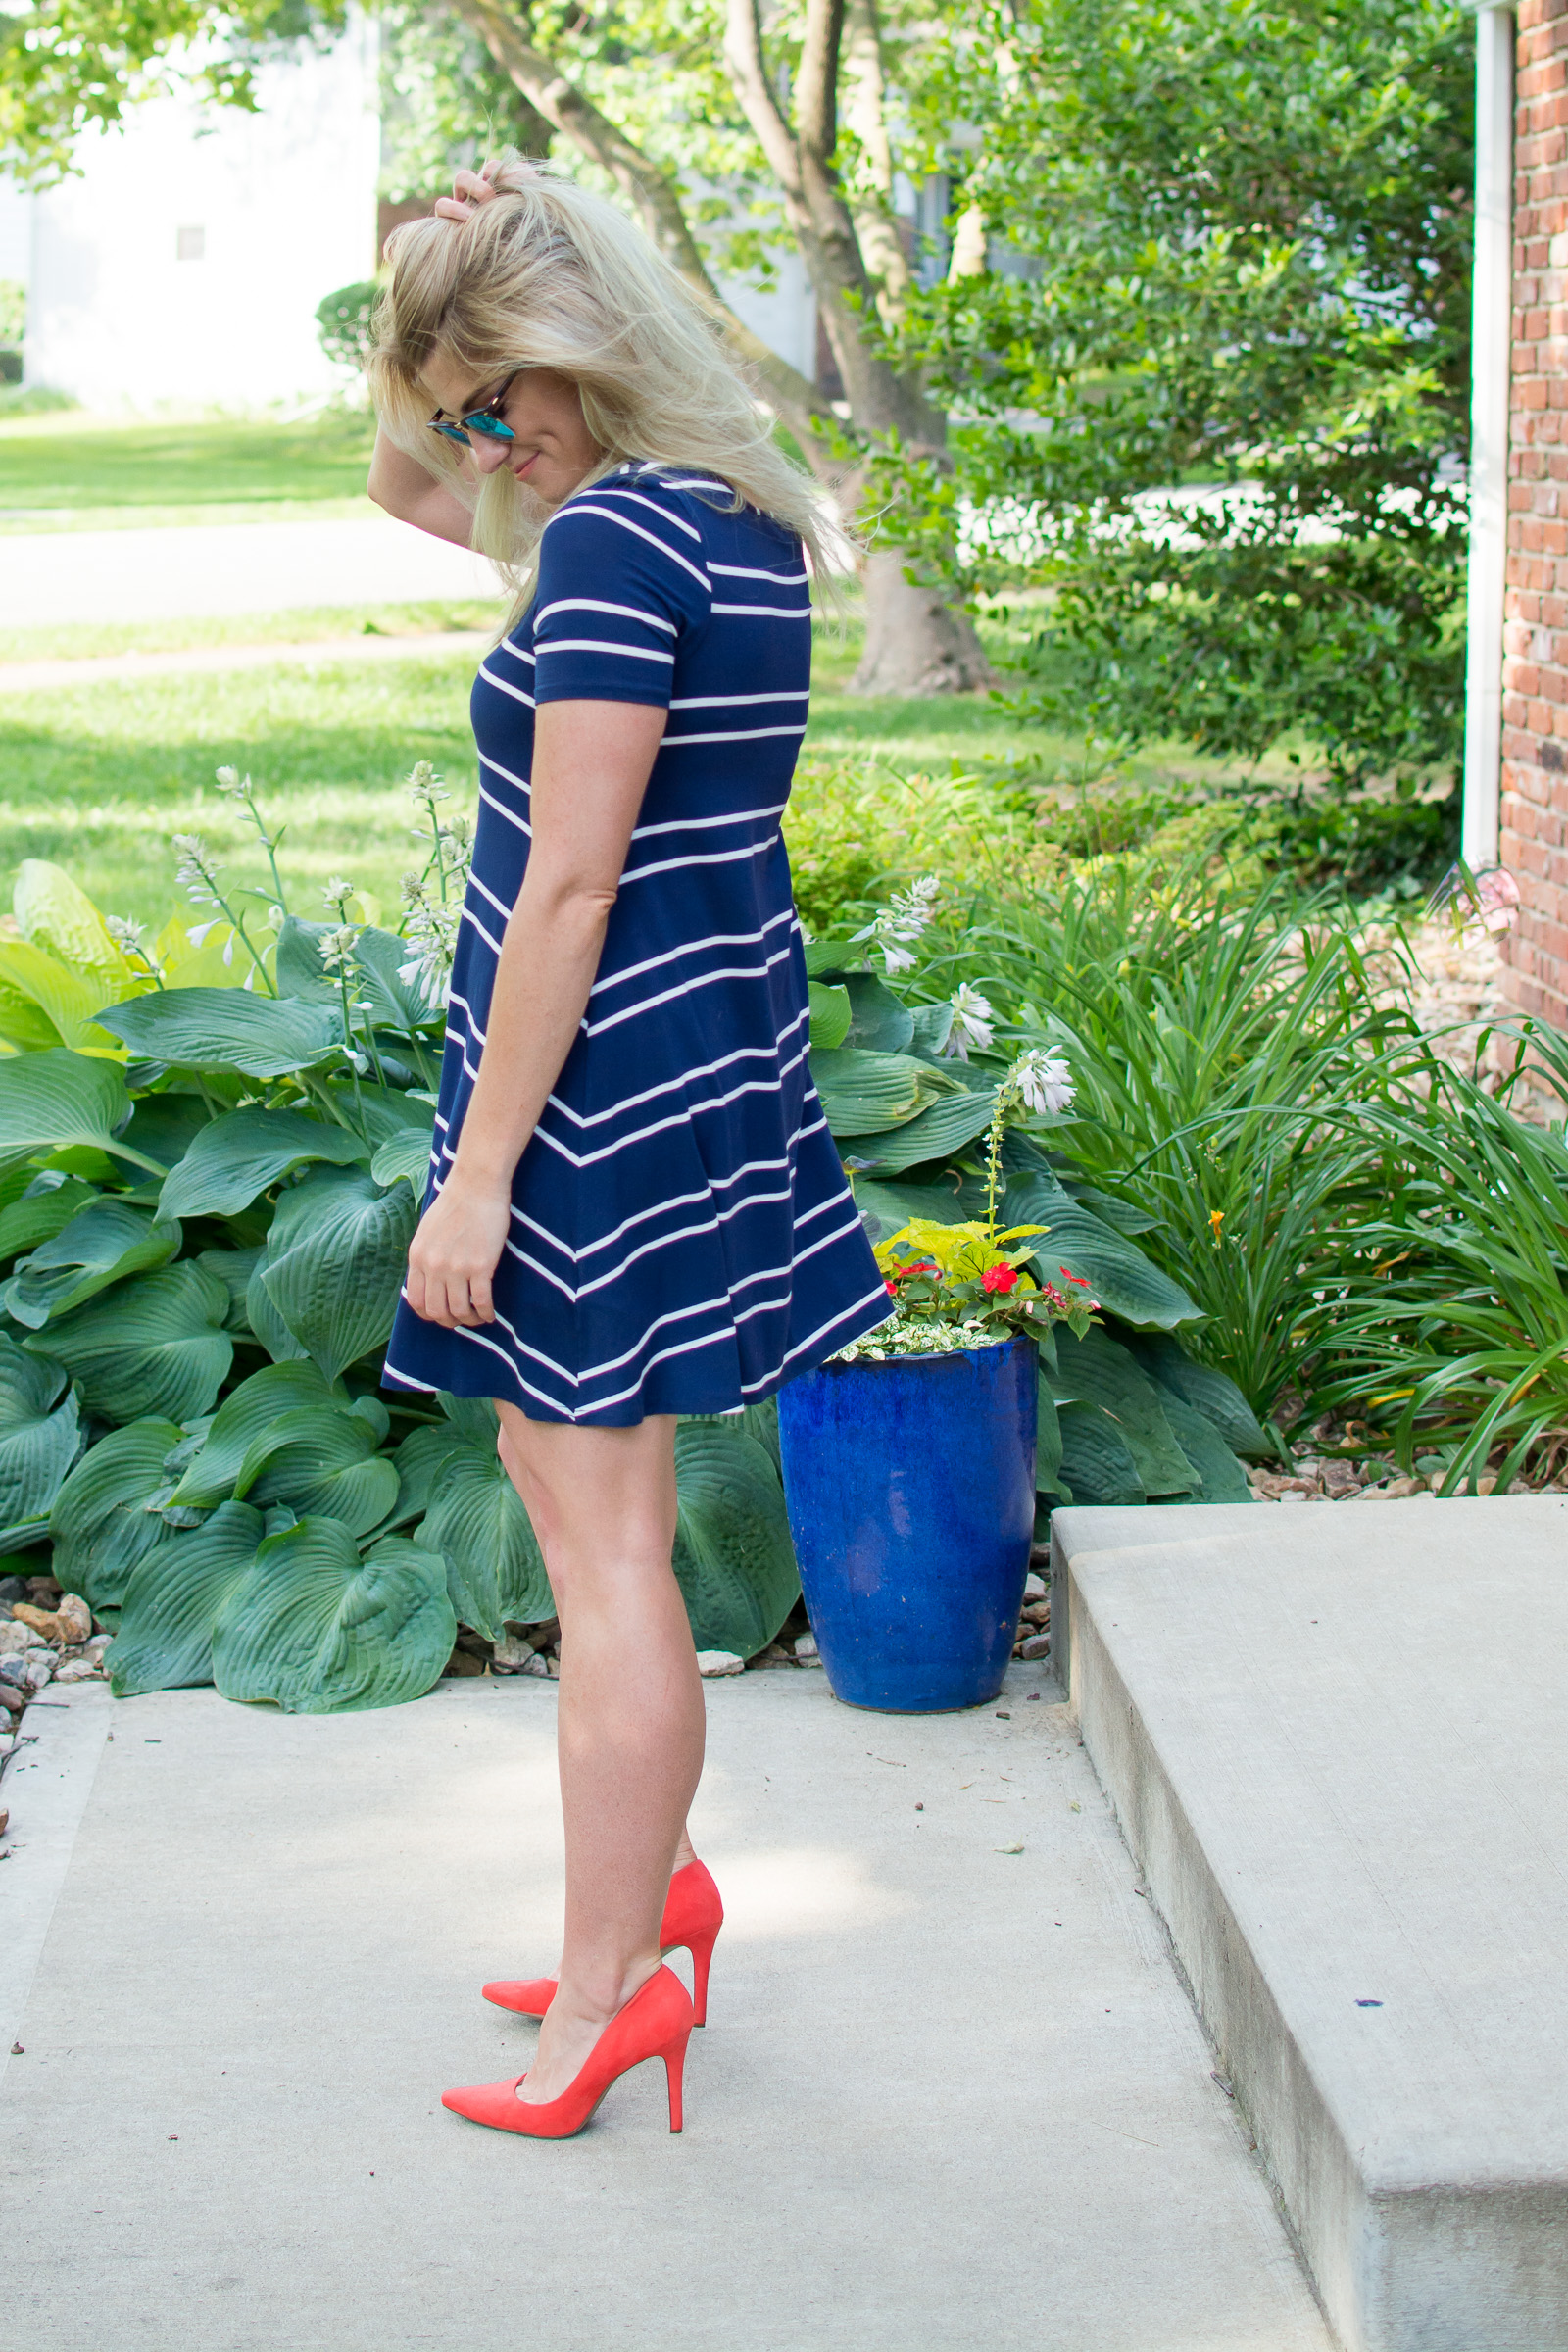 4th of July Outfit Idea: Navy Striped Dress. | Ashley from LSR